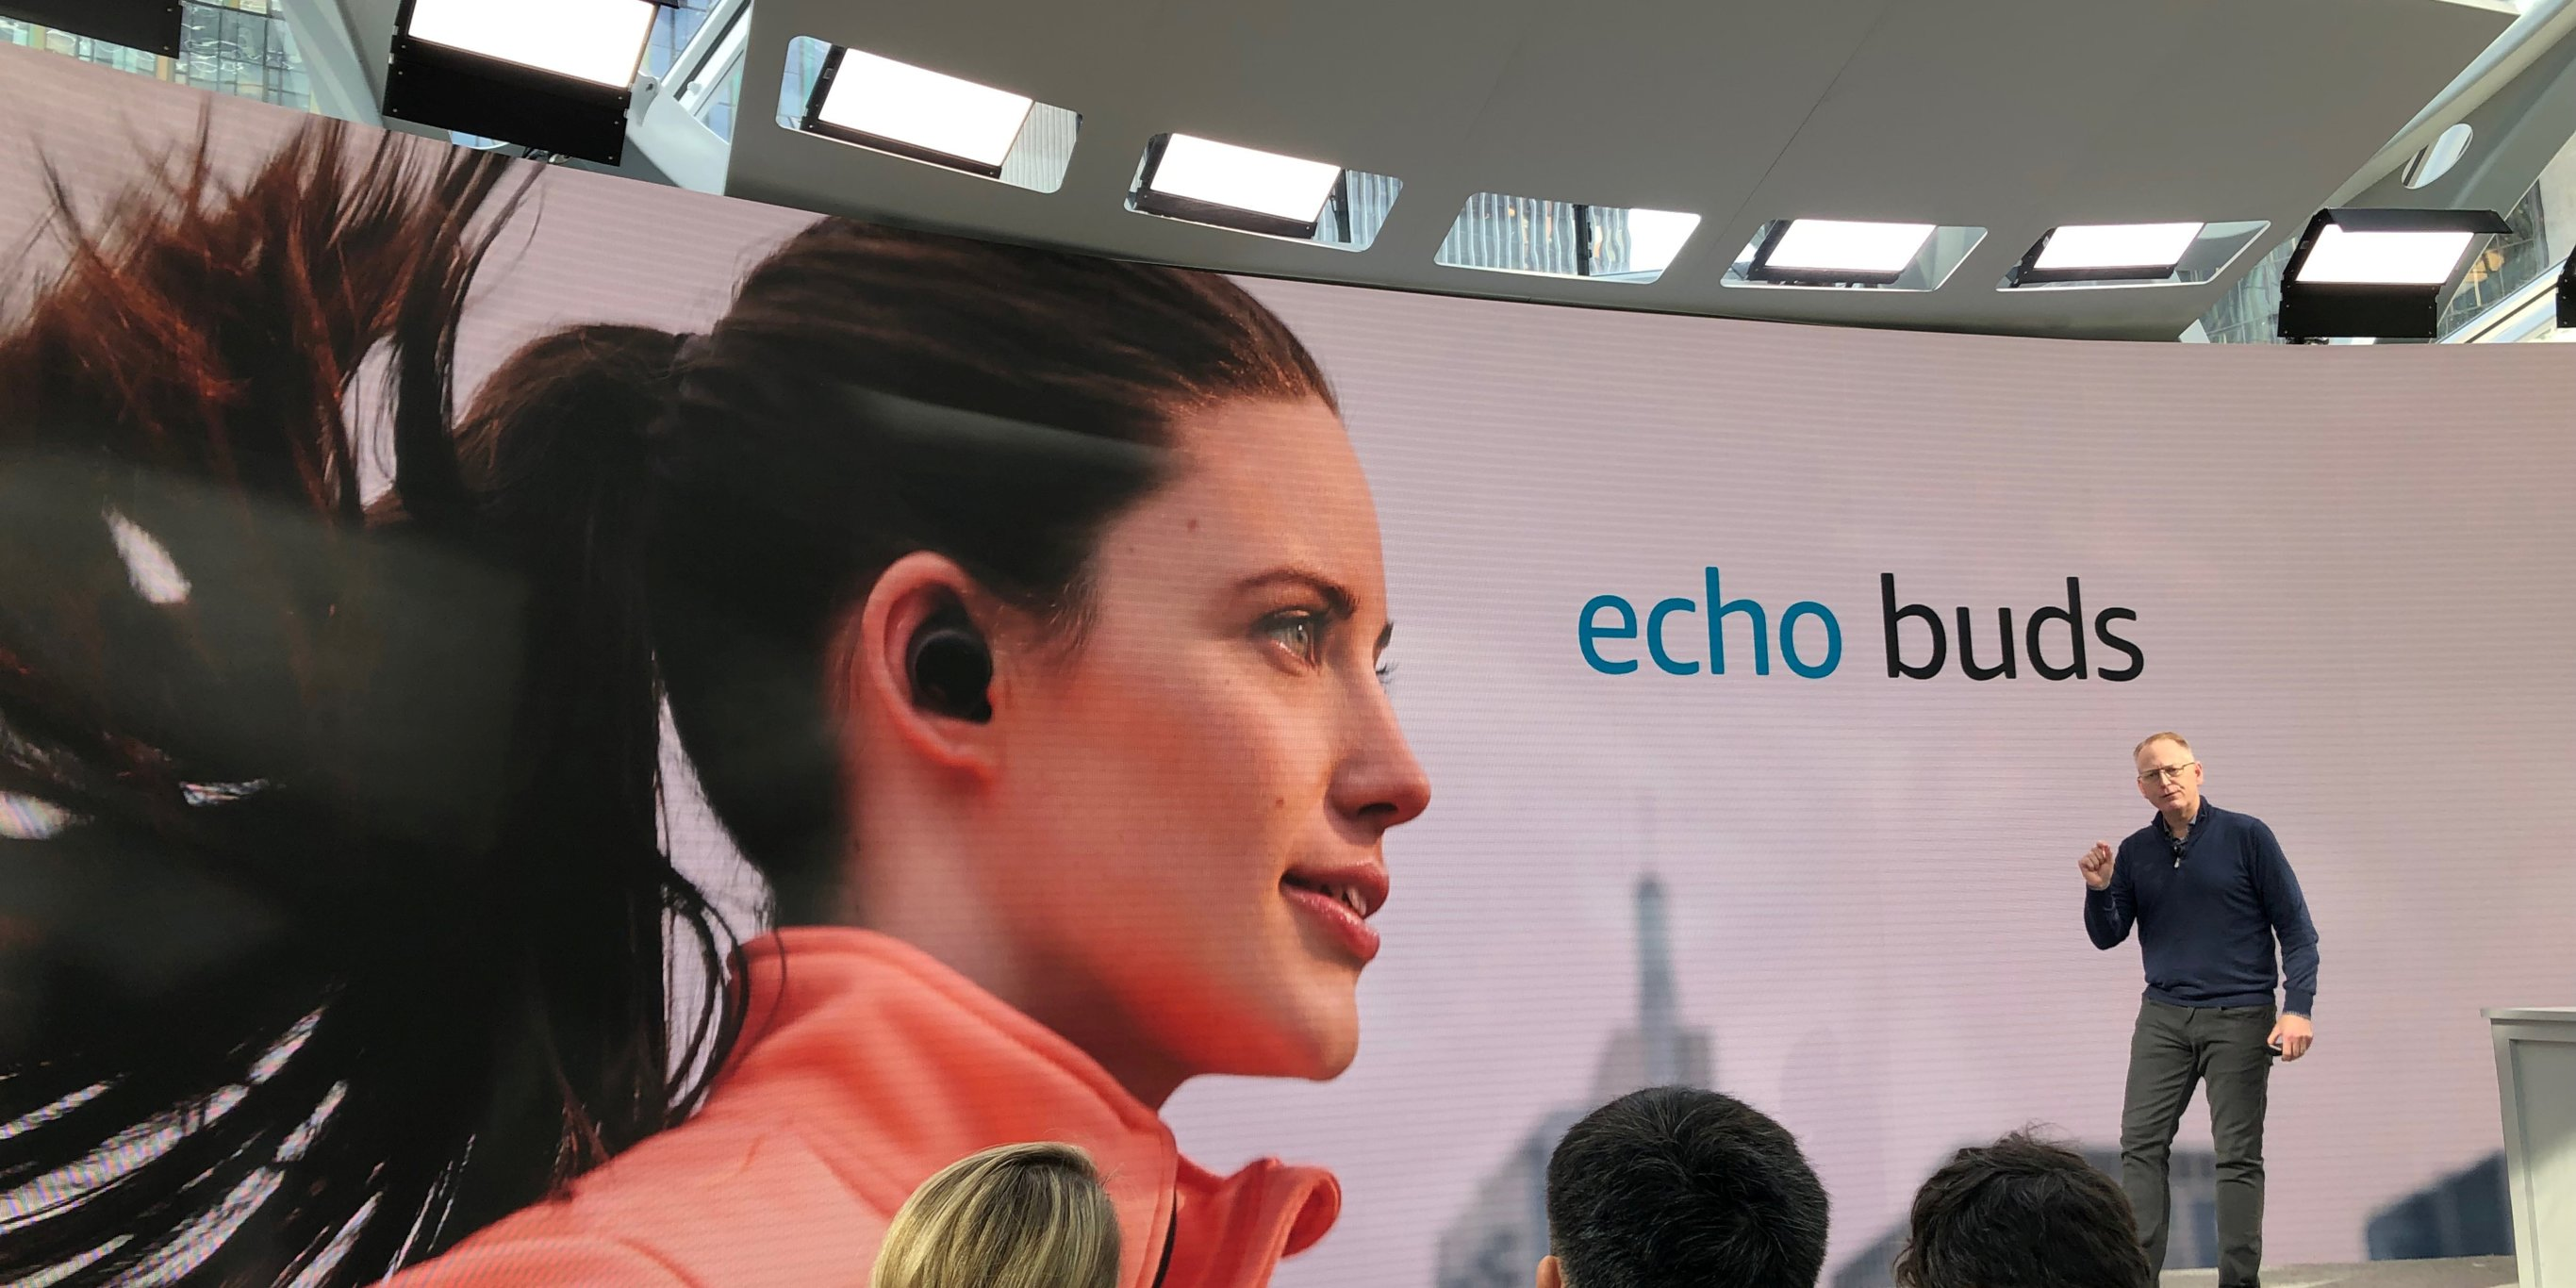 Amazon doesn't see Apple's AirPods as a threat to its new Echo Buds, says company executive (AMZN, AAPL)